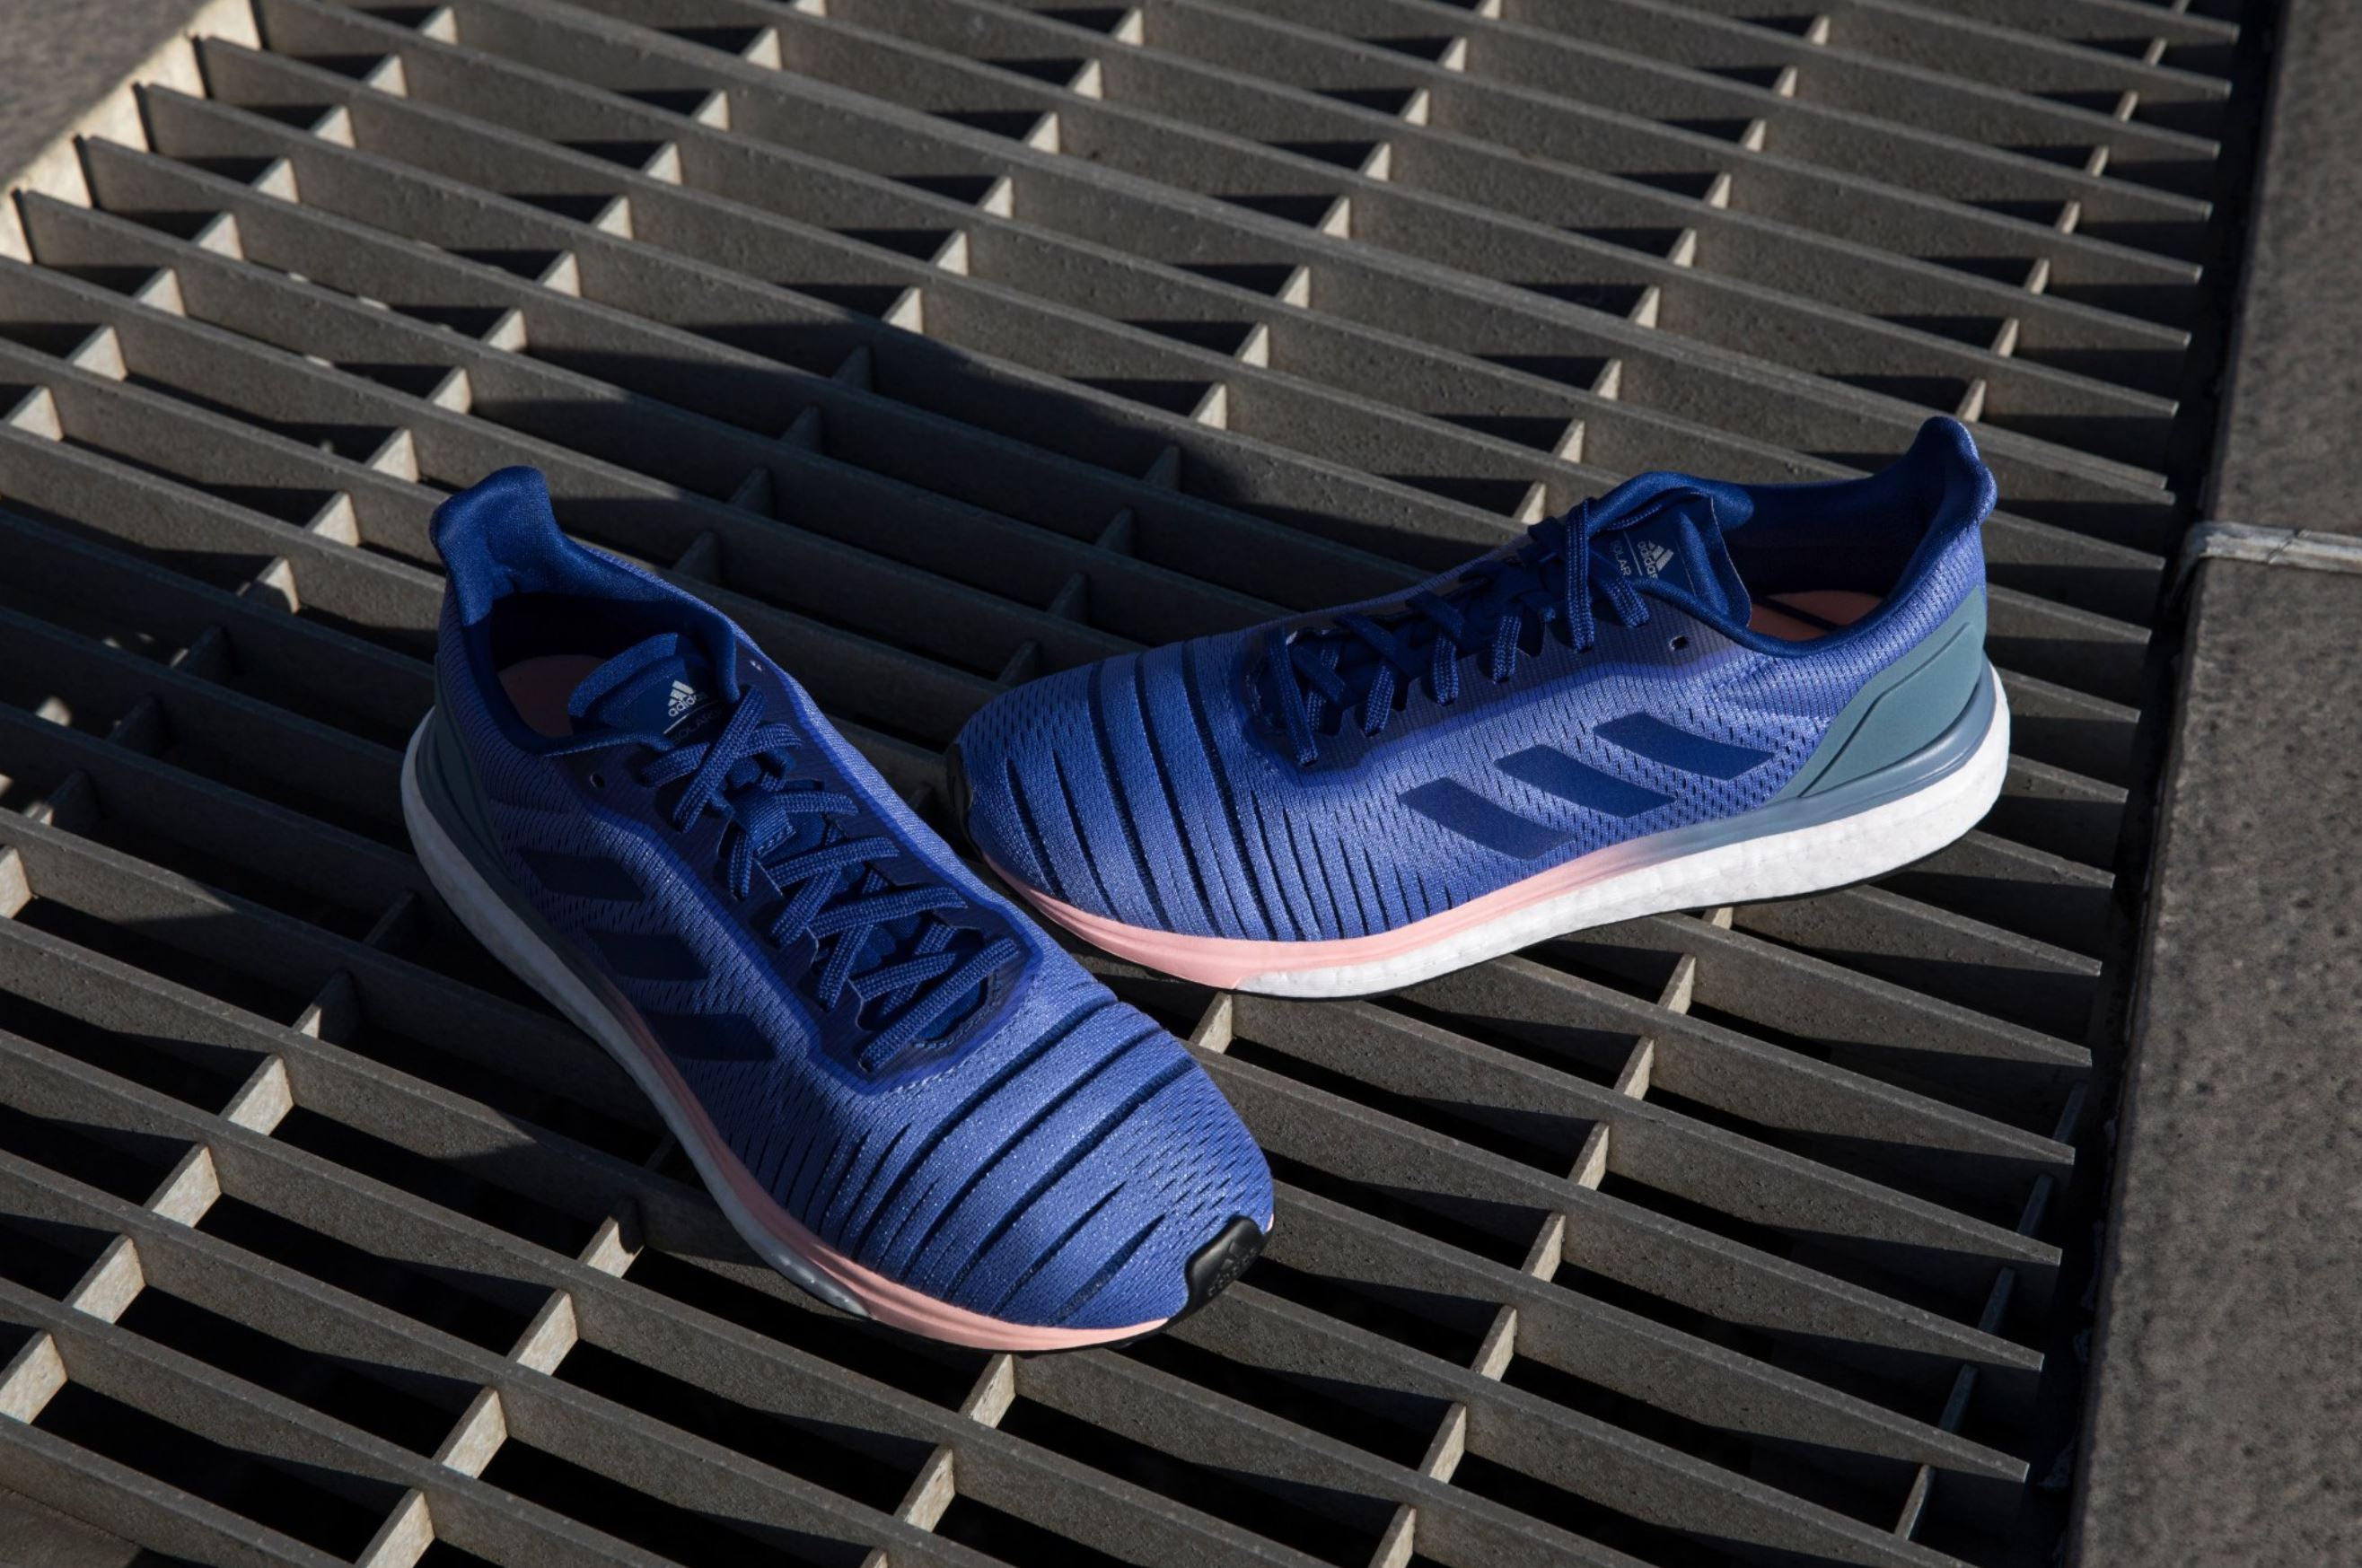 The adidas Solar Drive is the Brand's Next Performance